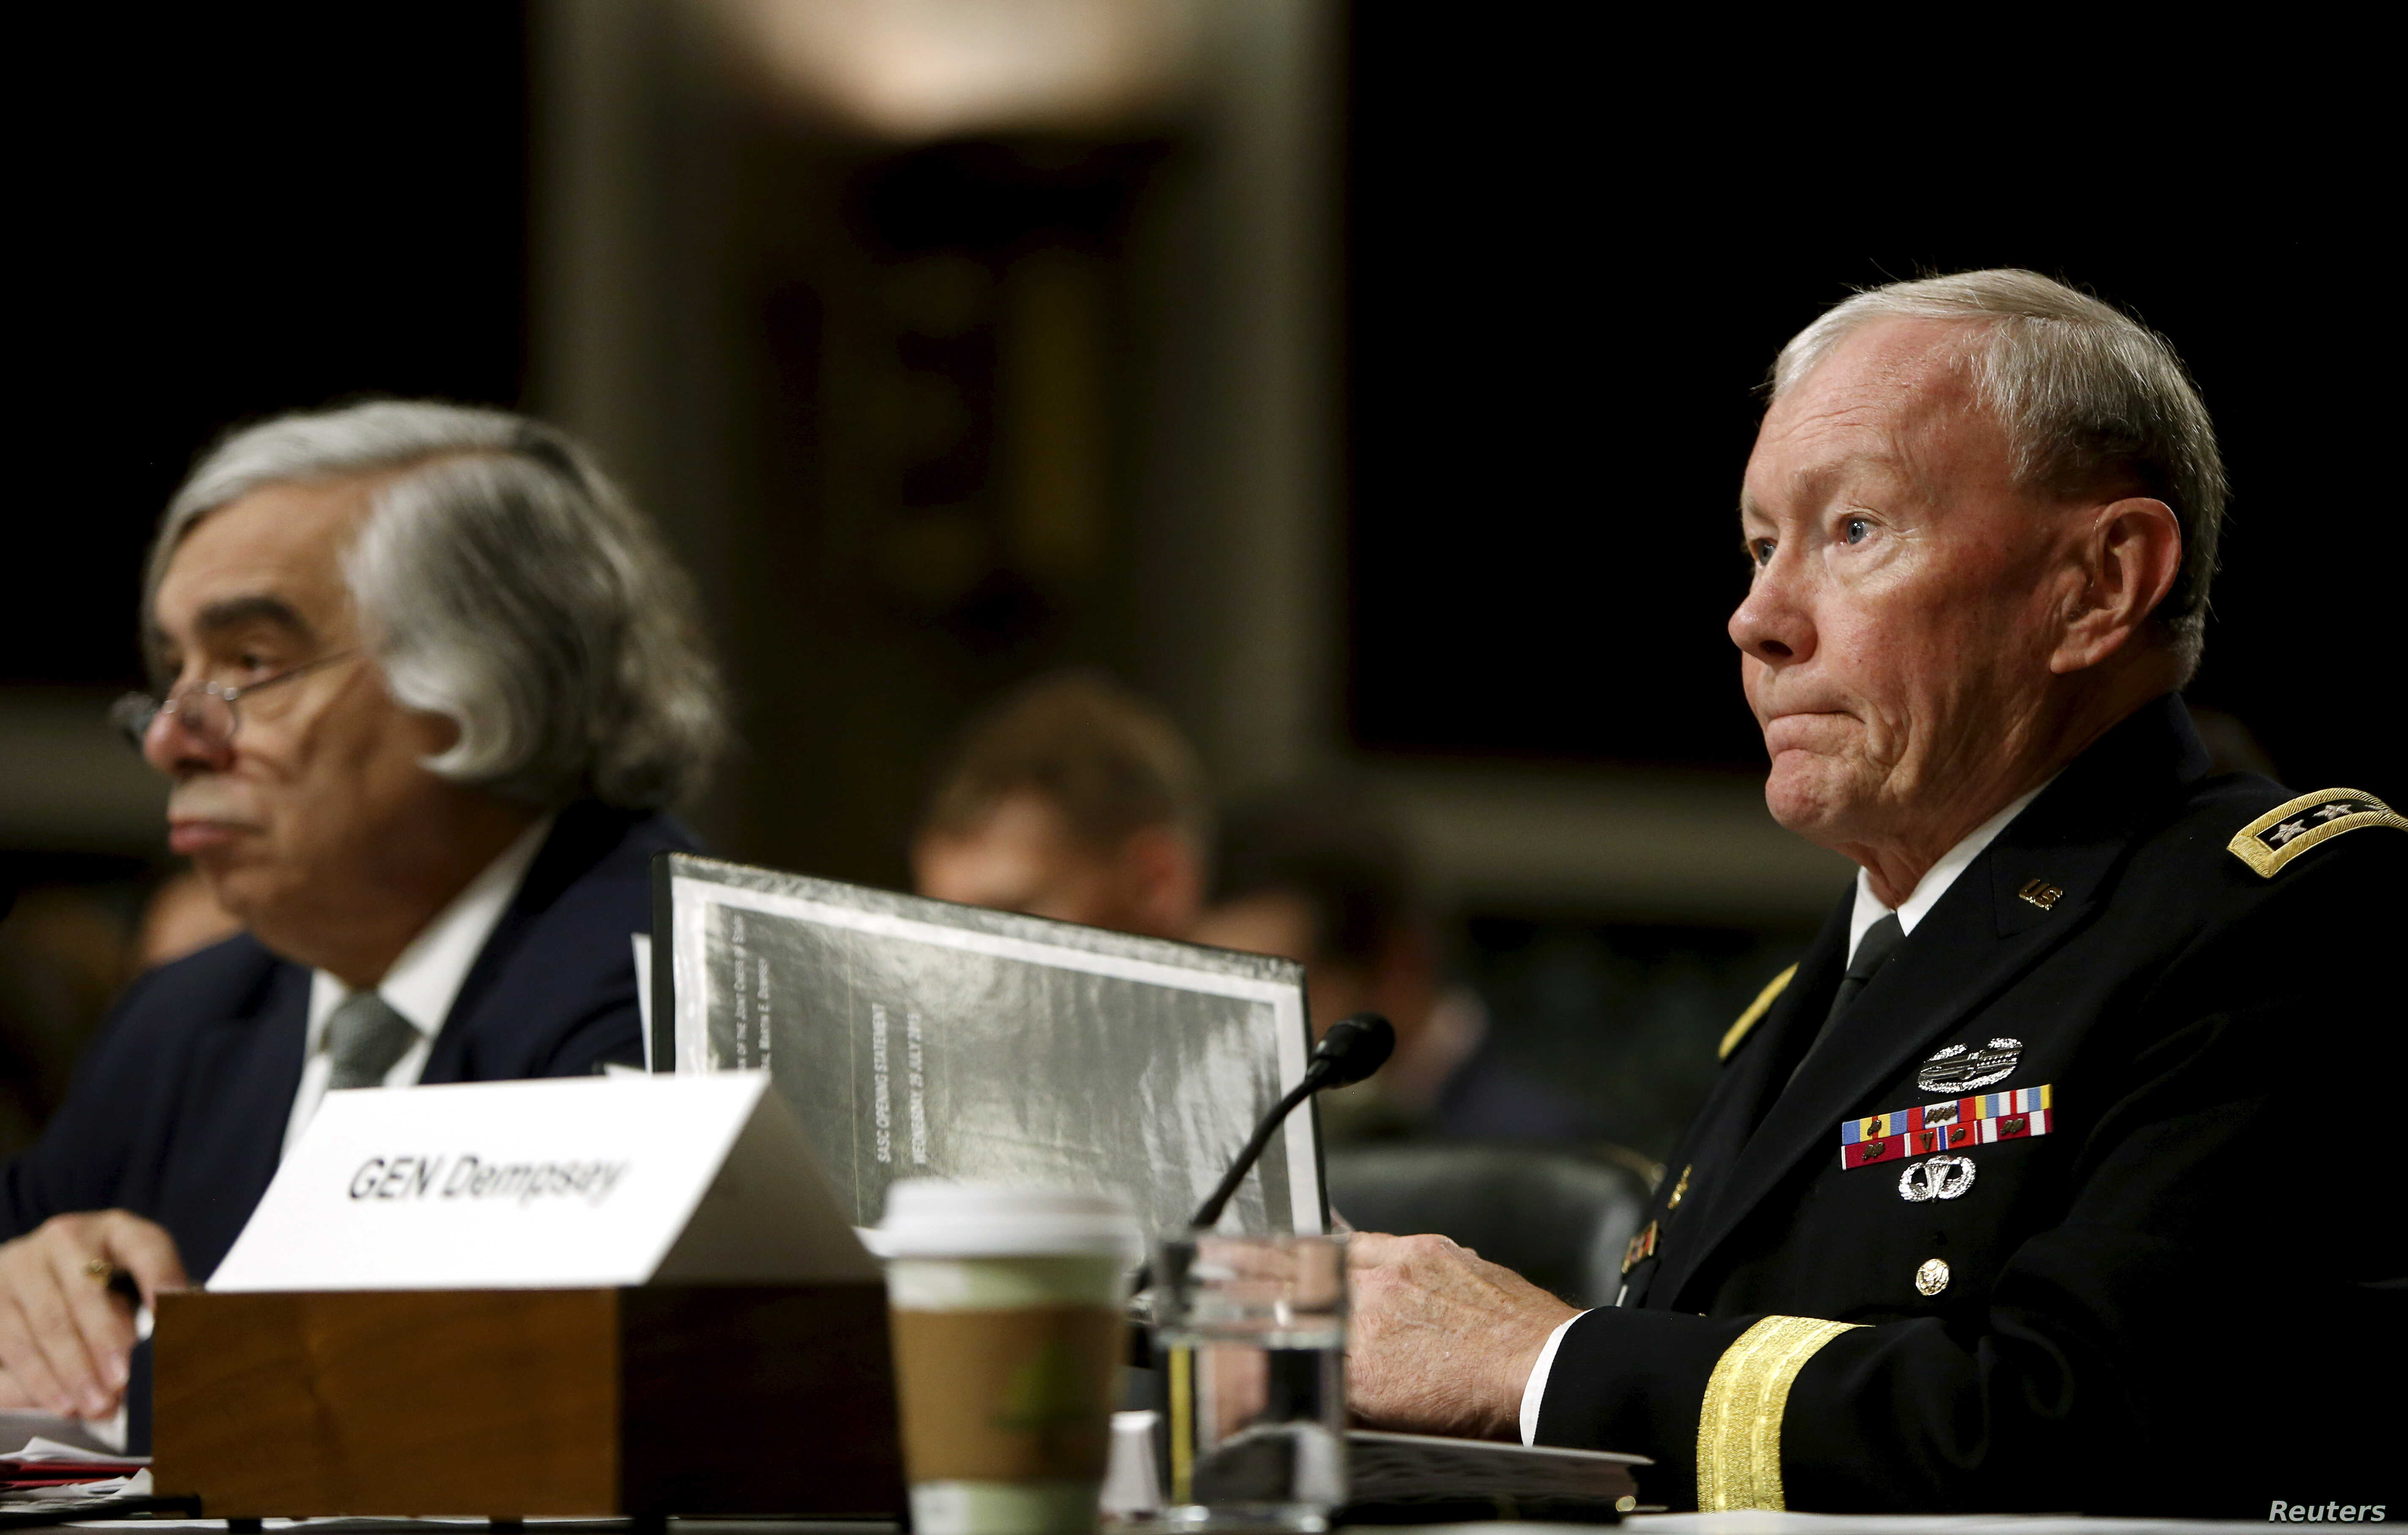 Chairman of the Joint Chiefs of Staff U.S. Army General Martin Dempsey, right, along with Energy Secretary Ernest Moniz, left, appear before the Senate Armed Services Committee in Washington, July 29, 2015.